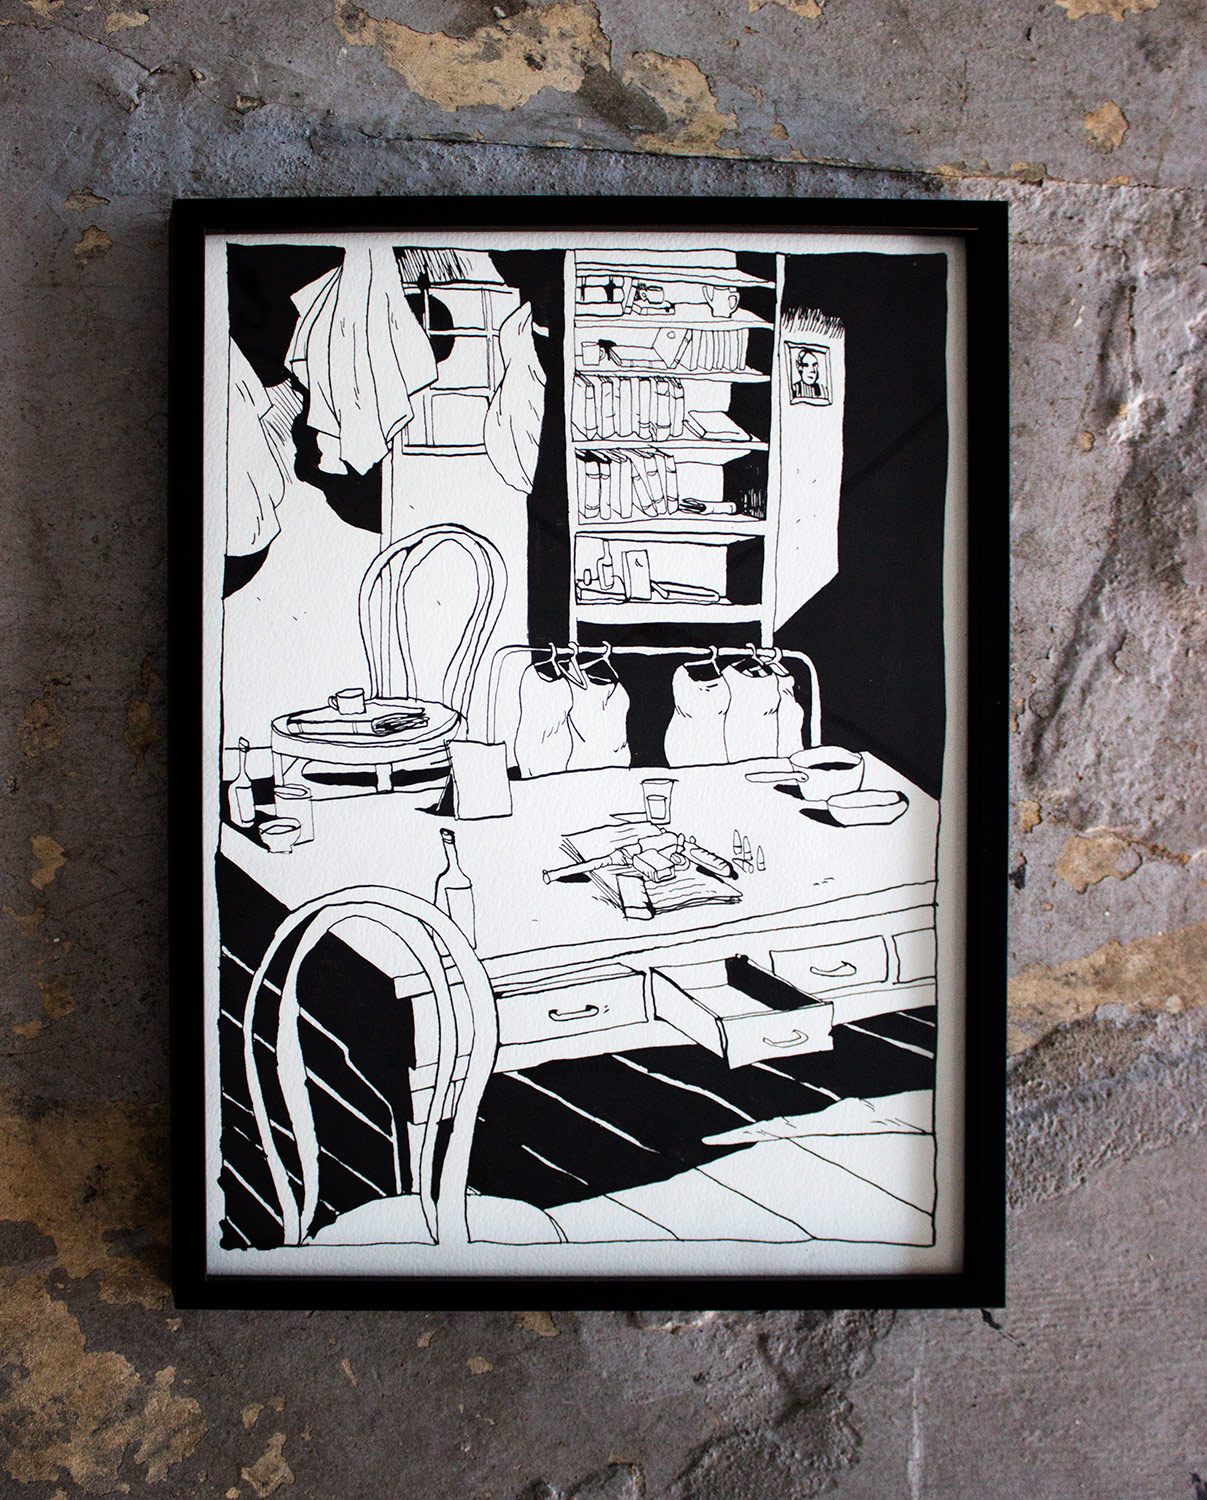 room with gun - strong and expressive art illustrations and drawings, talented Danish illustrator, cartoonist